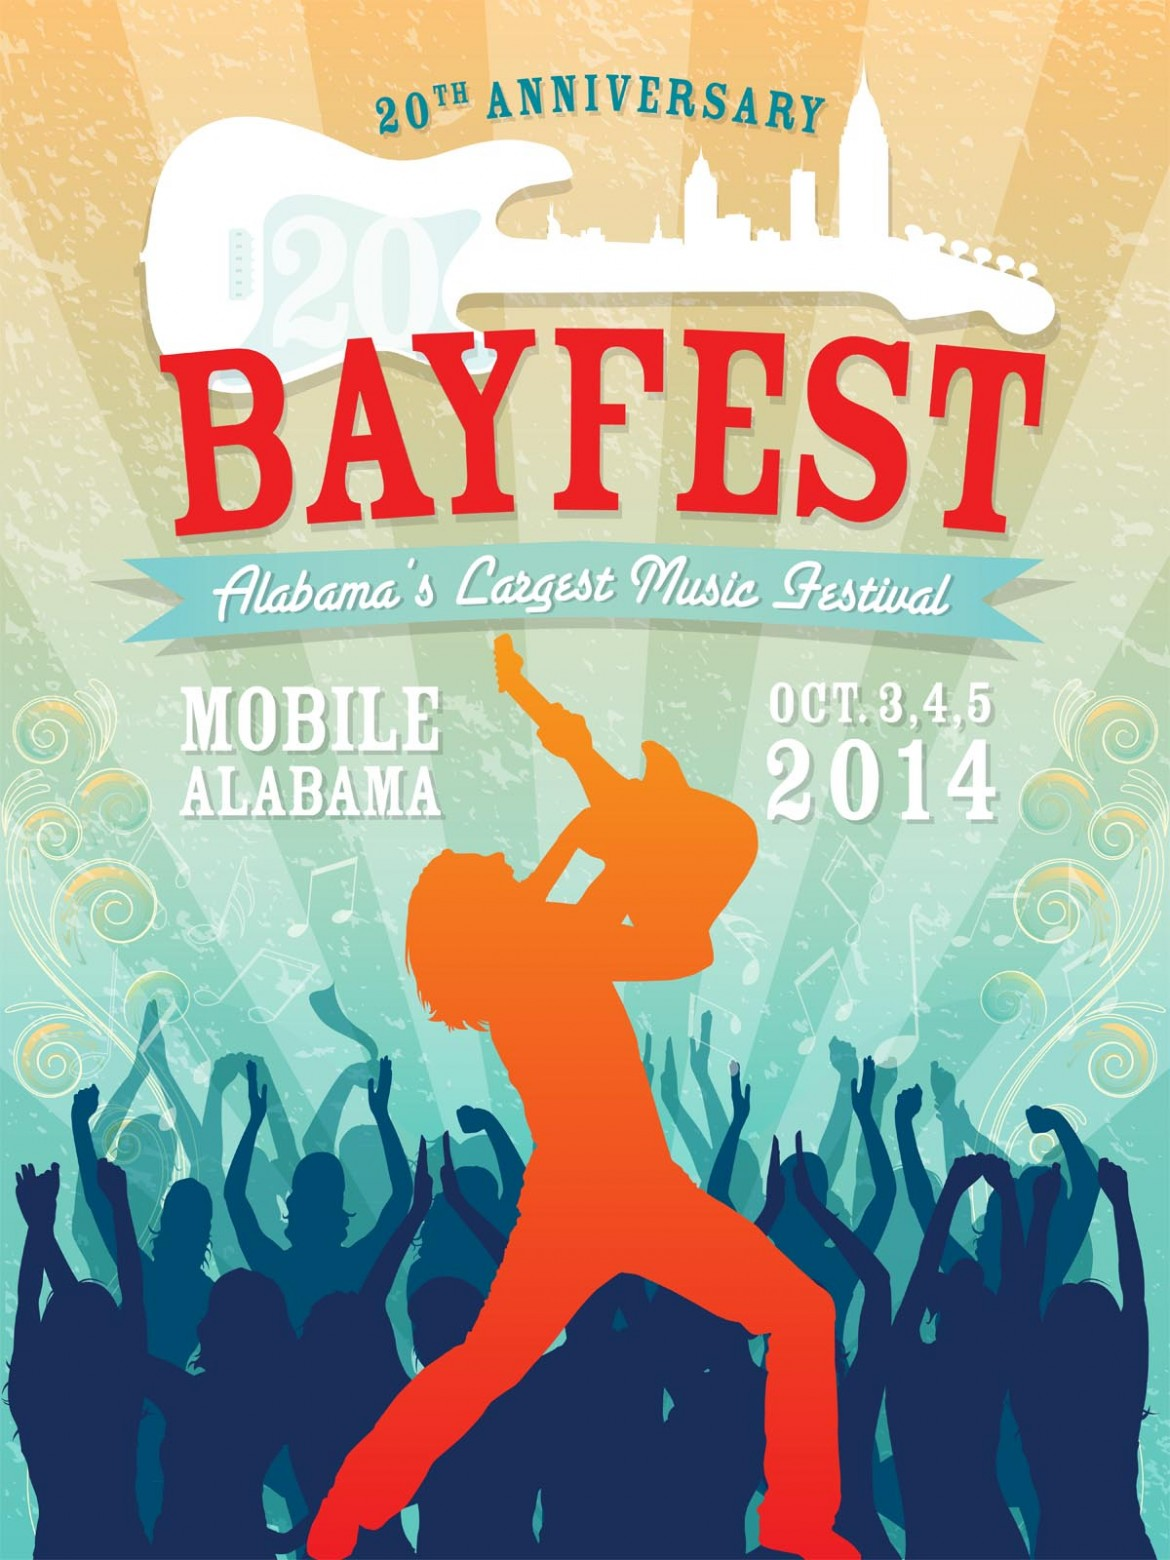 The official artwork for Bayfest 2014 was created by Carl Norman.